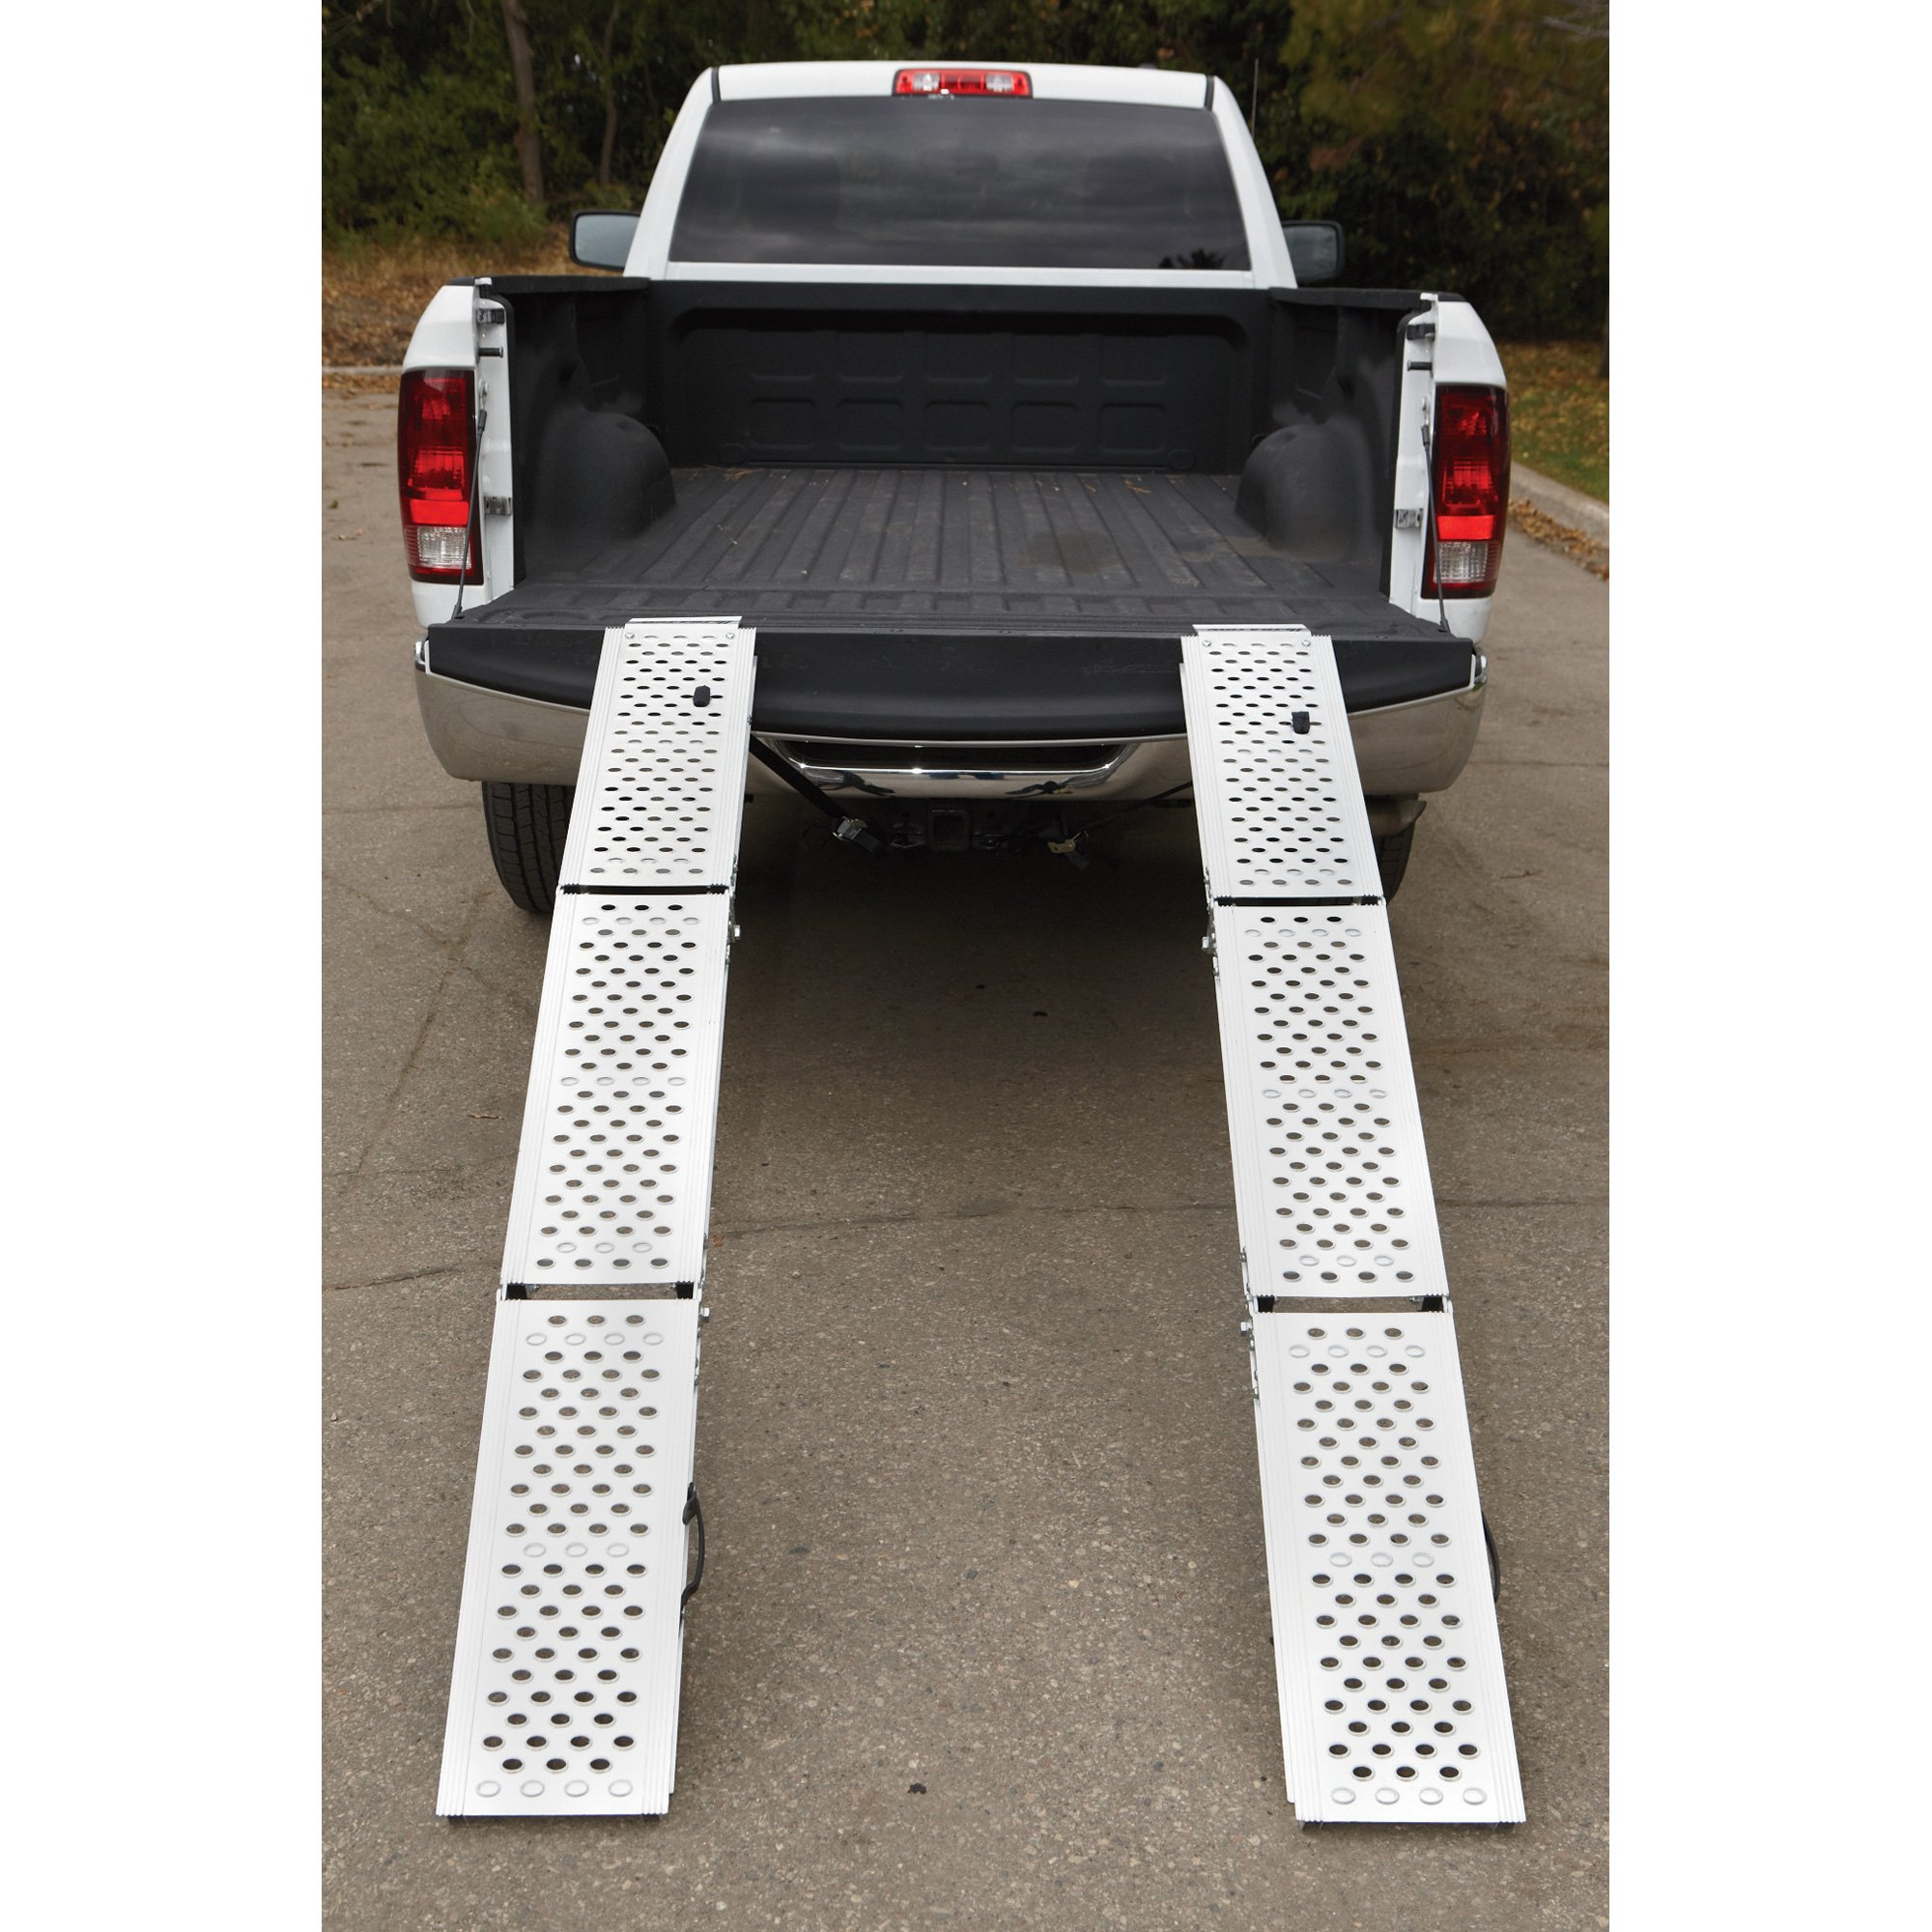 Ultra-Tow Folding Arched Aluminum Ramps - Pair, 76in.L, 1,000-Lb. Total Load Capacity